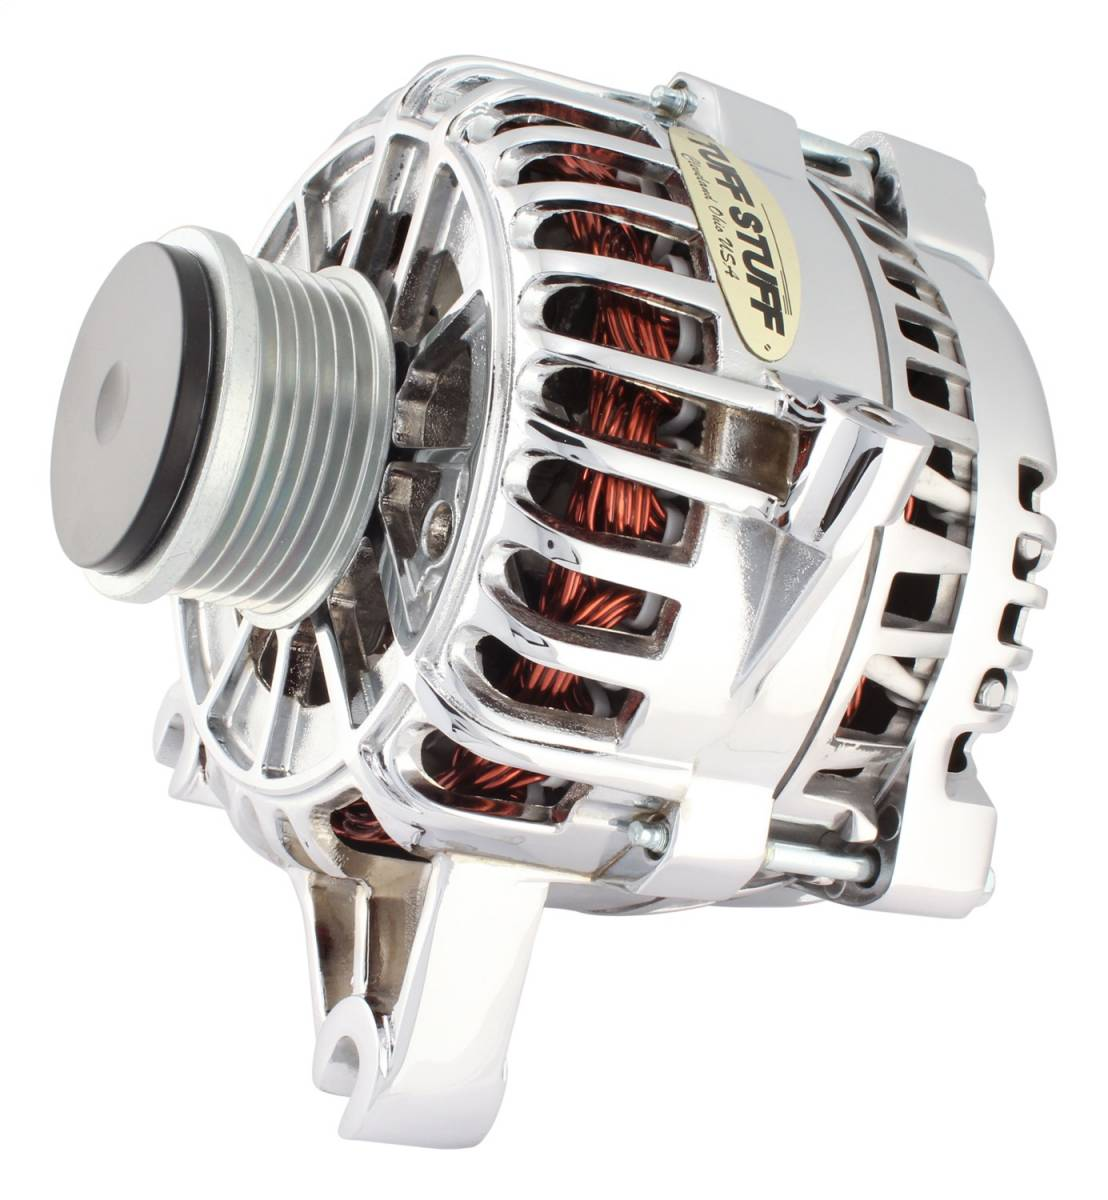 Tuff Stuff Performance - Alternator 225 AMP OEM Wire 6 Groove Clutch Pulley Chrome Roush Supercharger 8438DSC